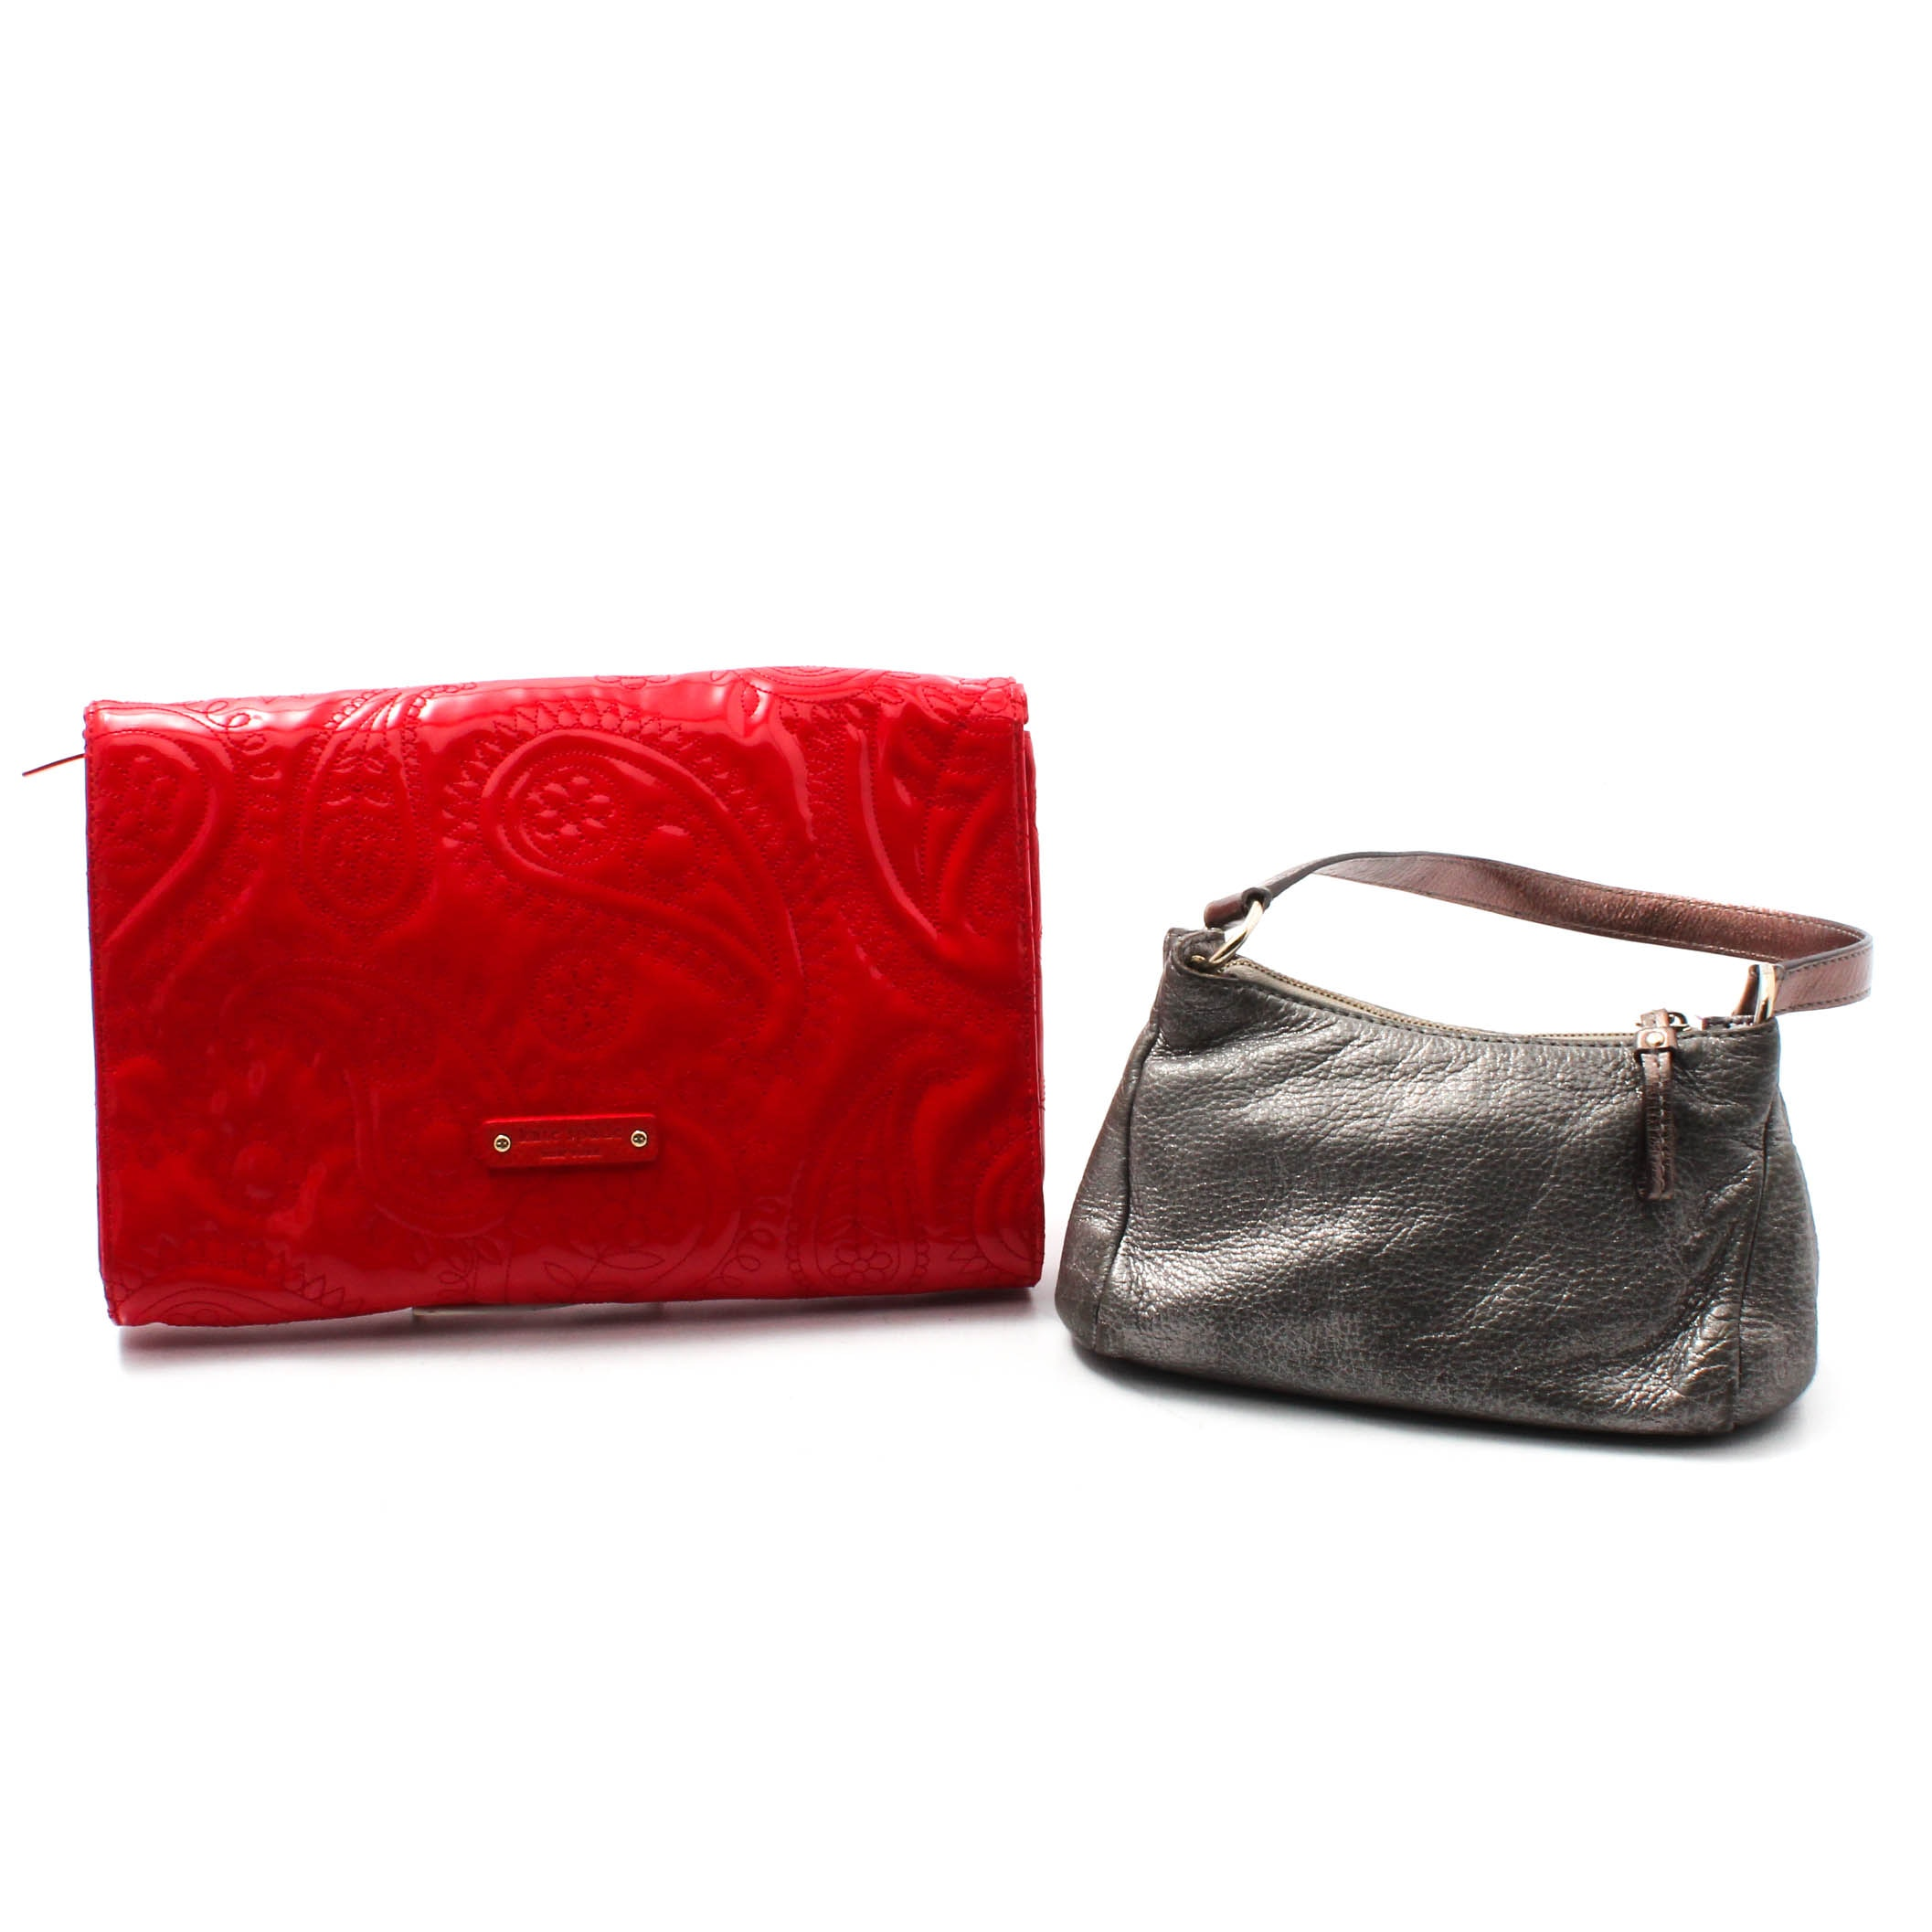 Kate Spade New York Leather Evening Bags